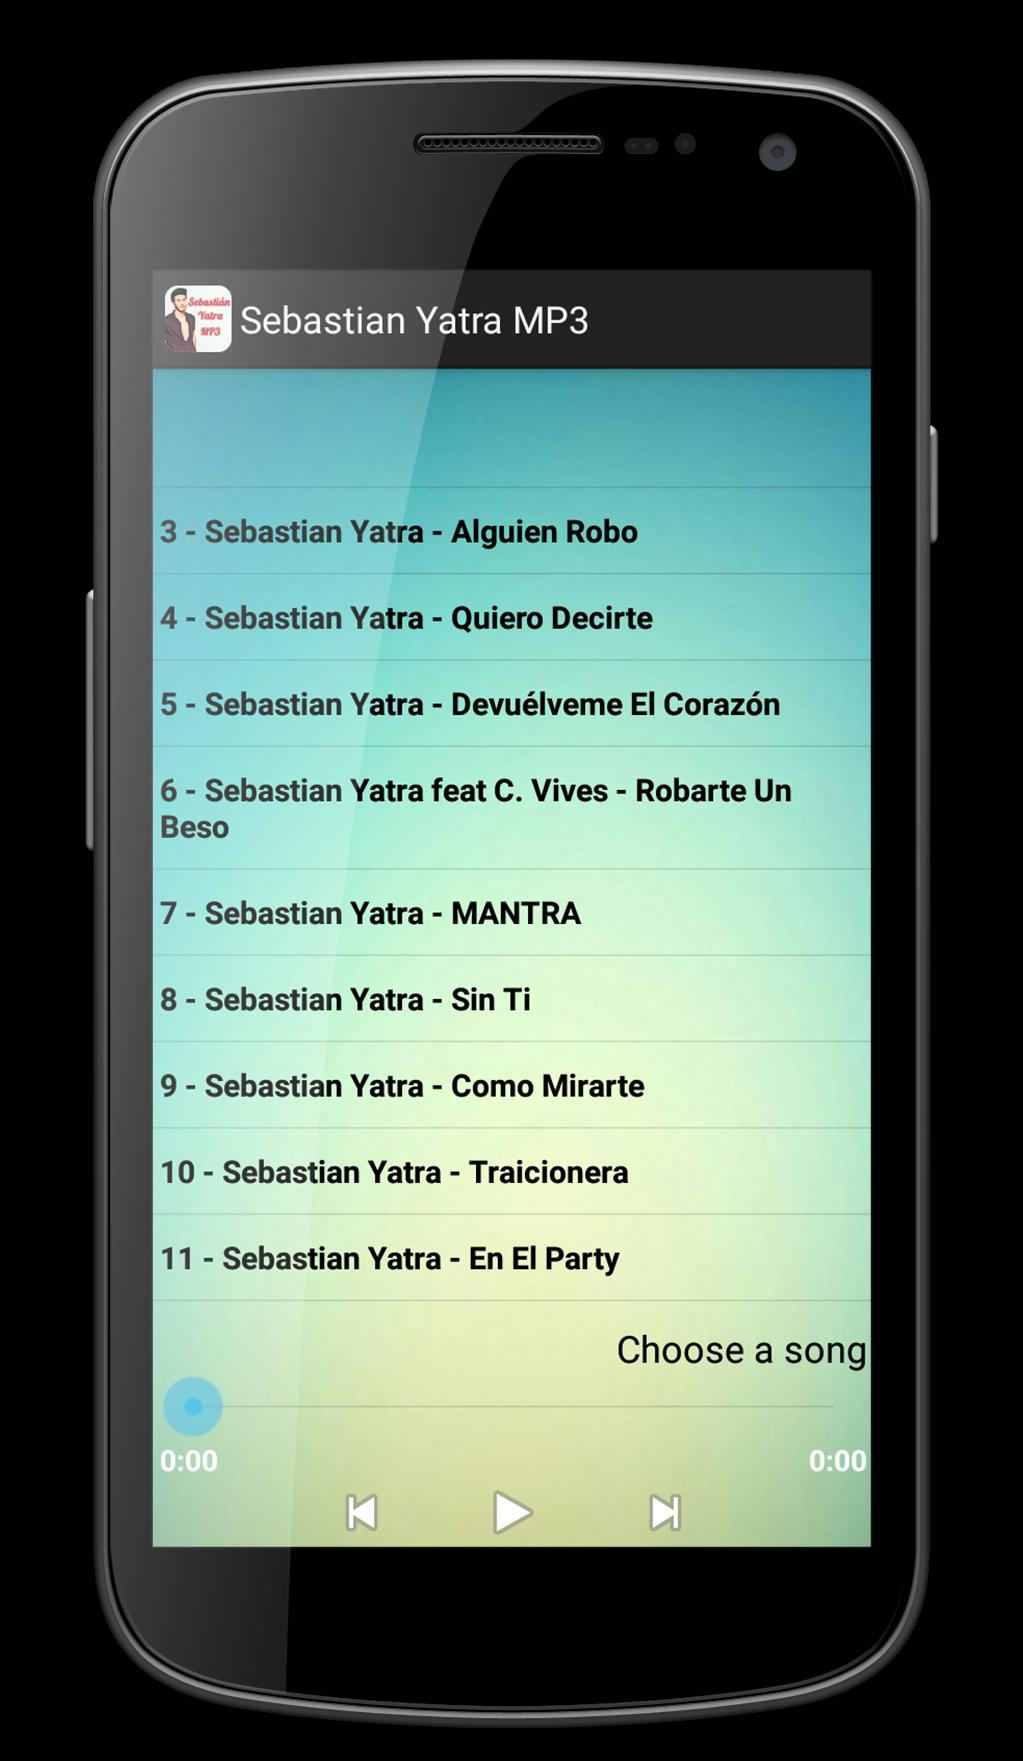 Sebastian Yatra MP3 for Android - APK Download